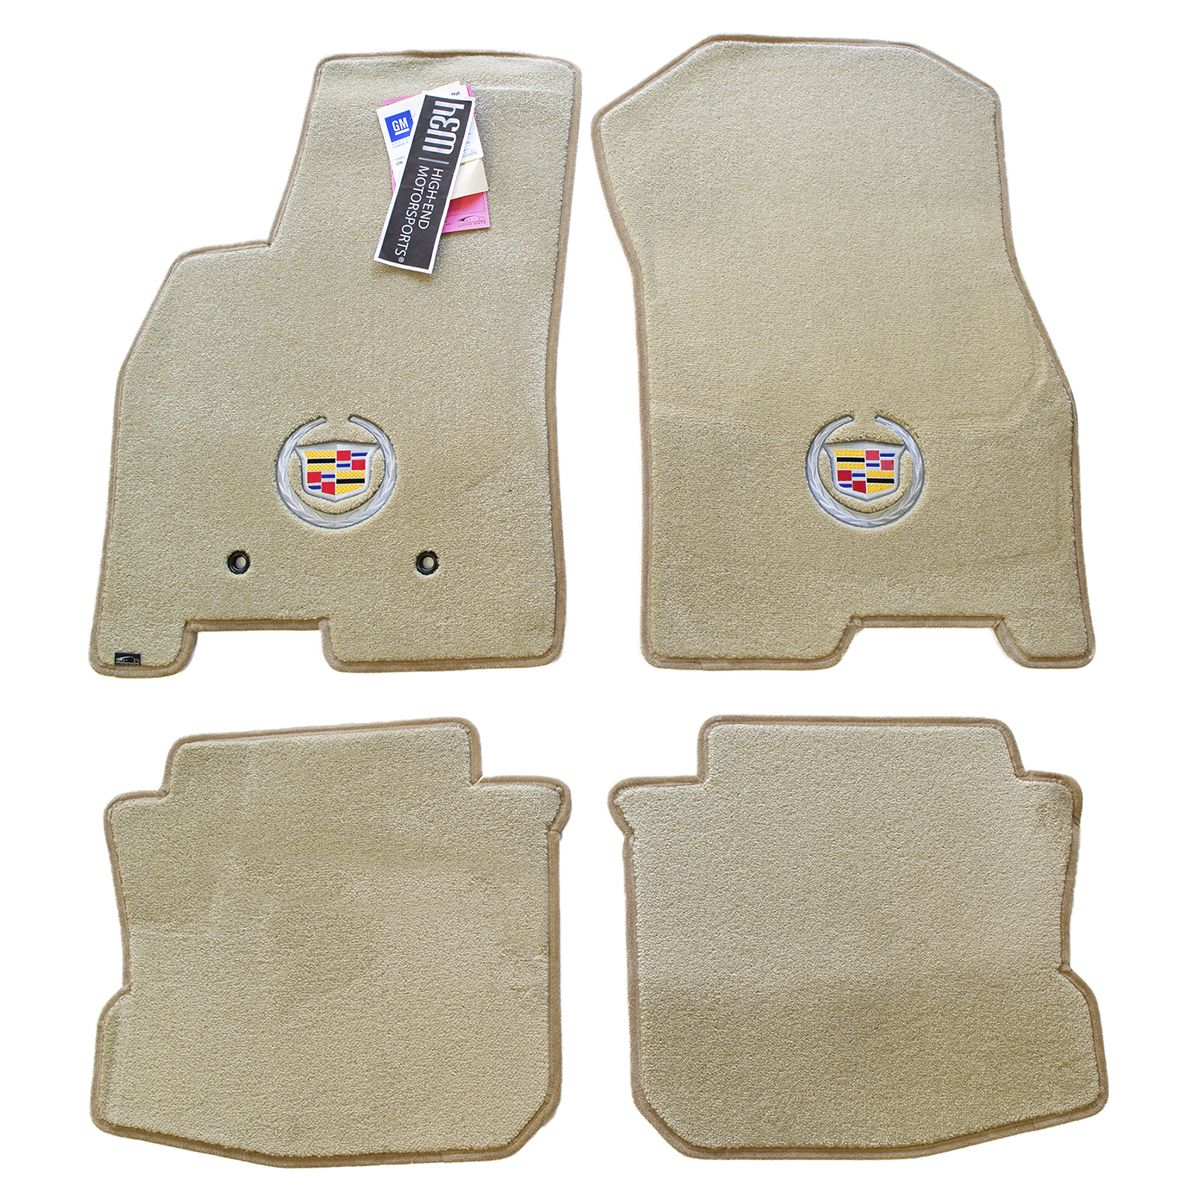 2006-2011 Cadillac DTS FUll set floorMats